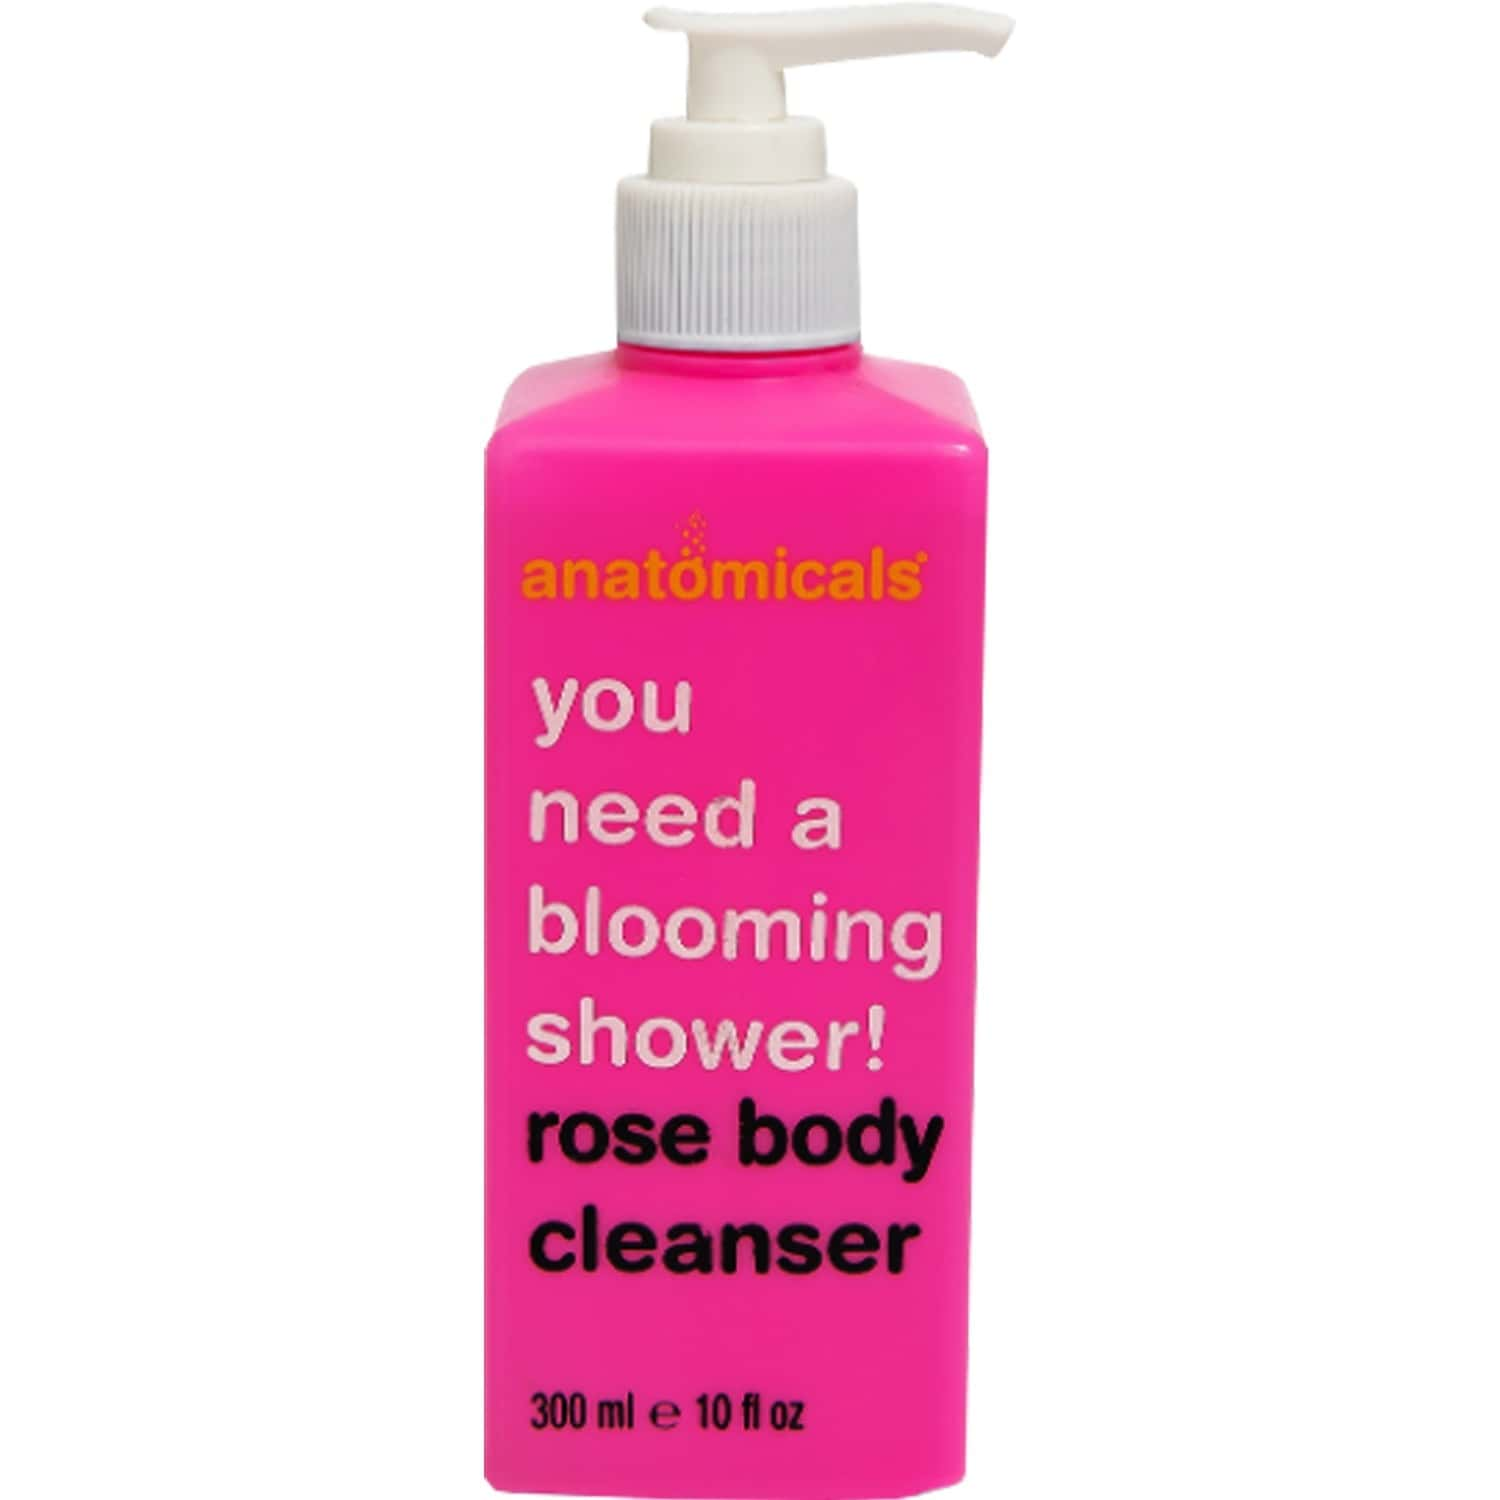 Anatomicals   Rose Body Cleanser   Softly Cleanses & Radiates   Paraben Free   Unisex   300 Ml